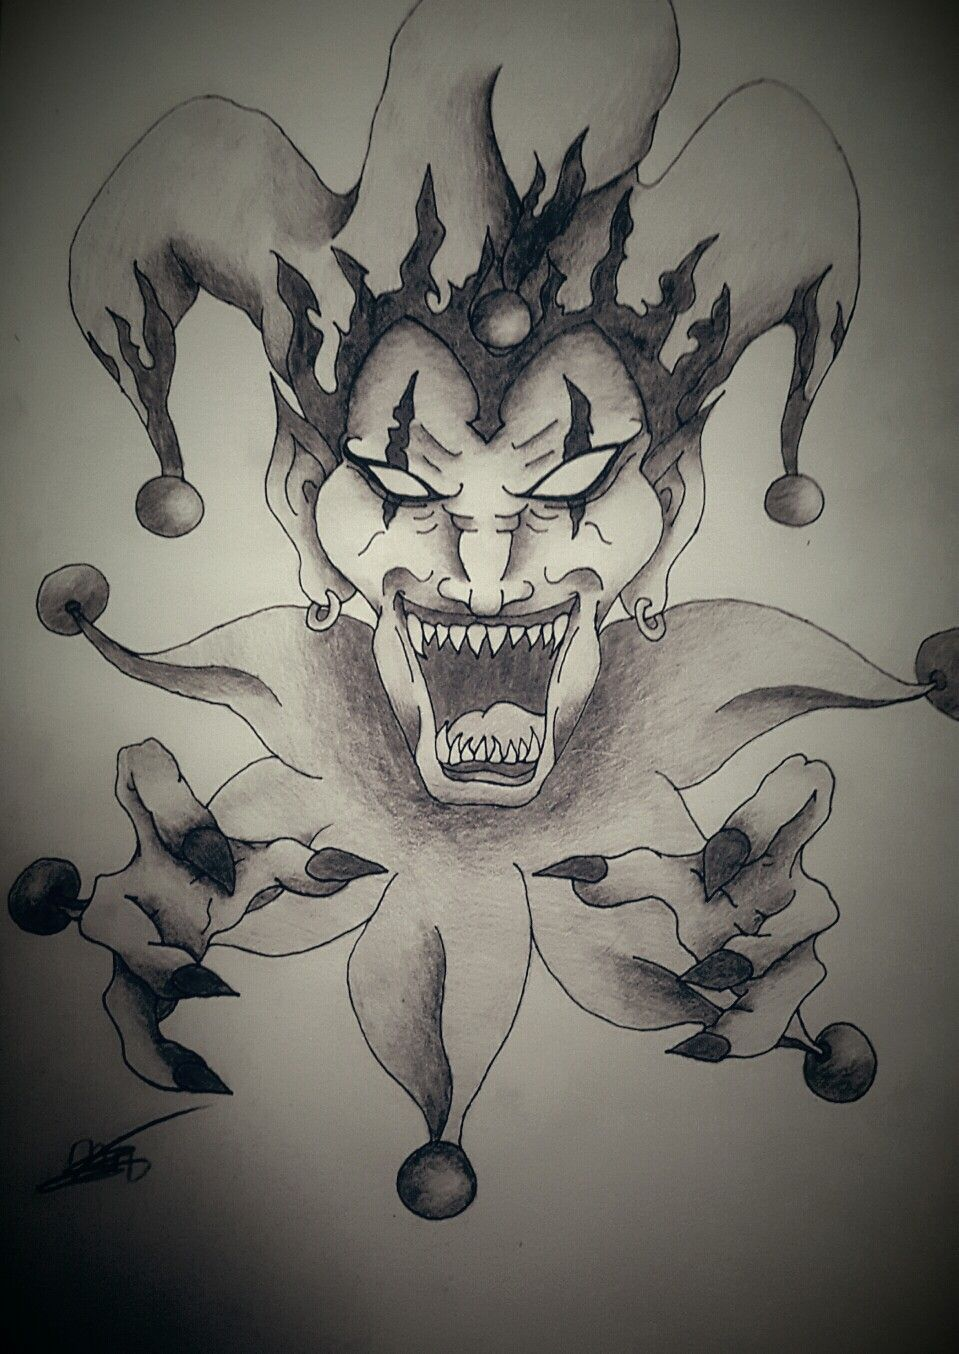 evil joker drawing at getdrawings com free for personal use evil